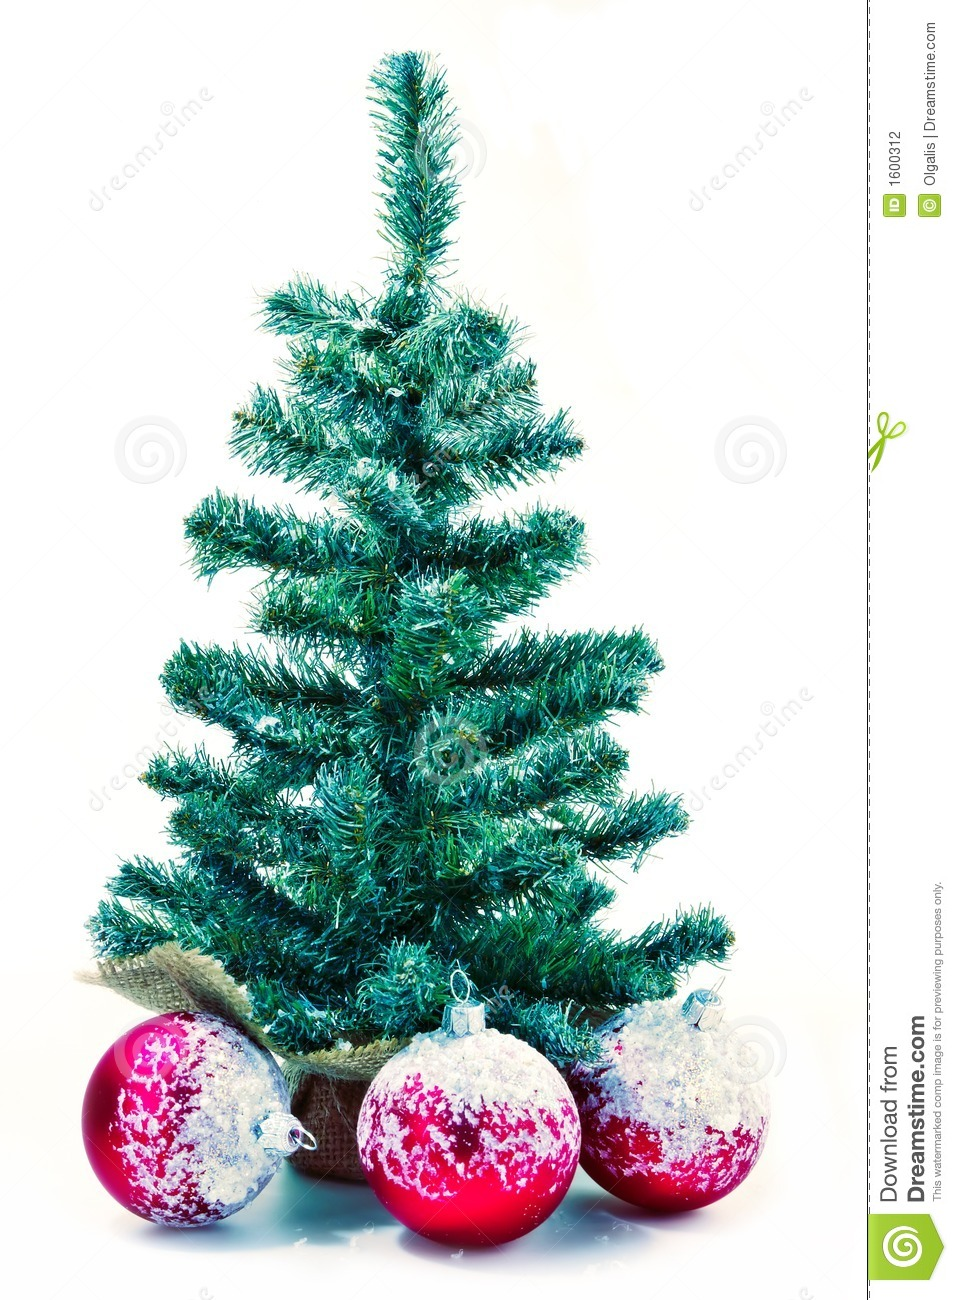 Christmas tree with red balls stock photography image